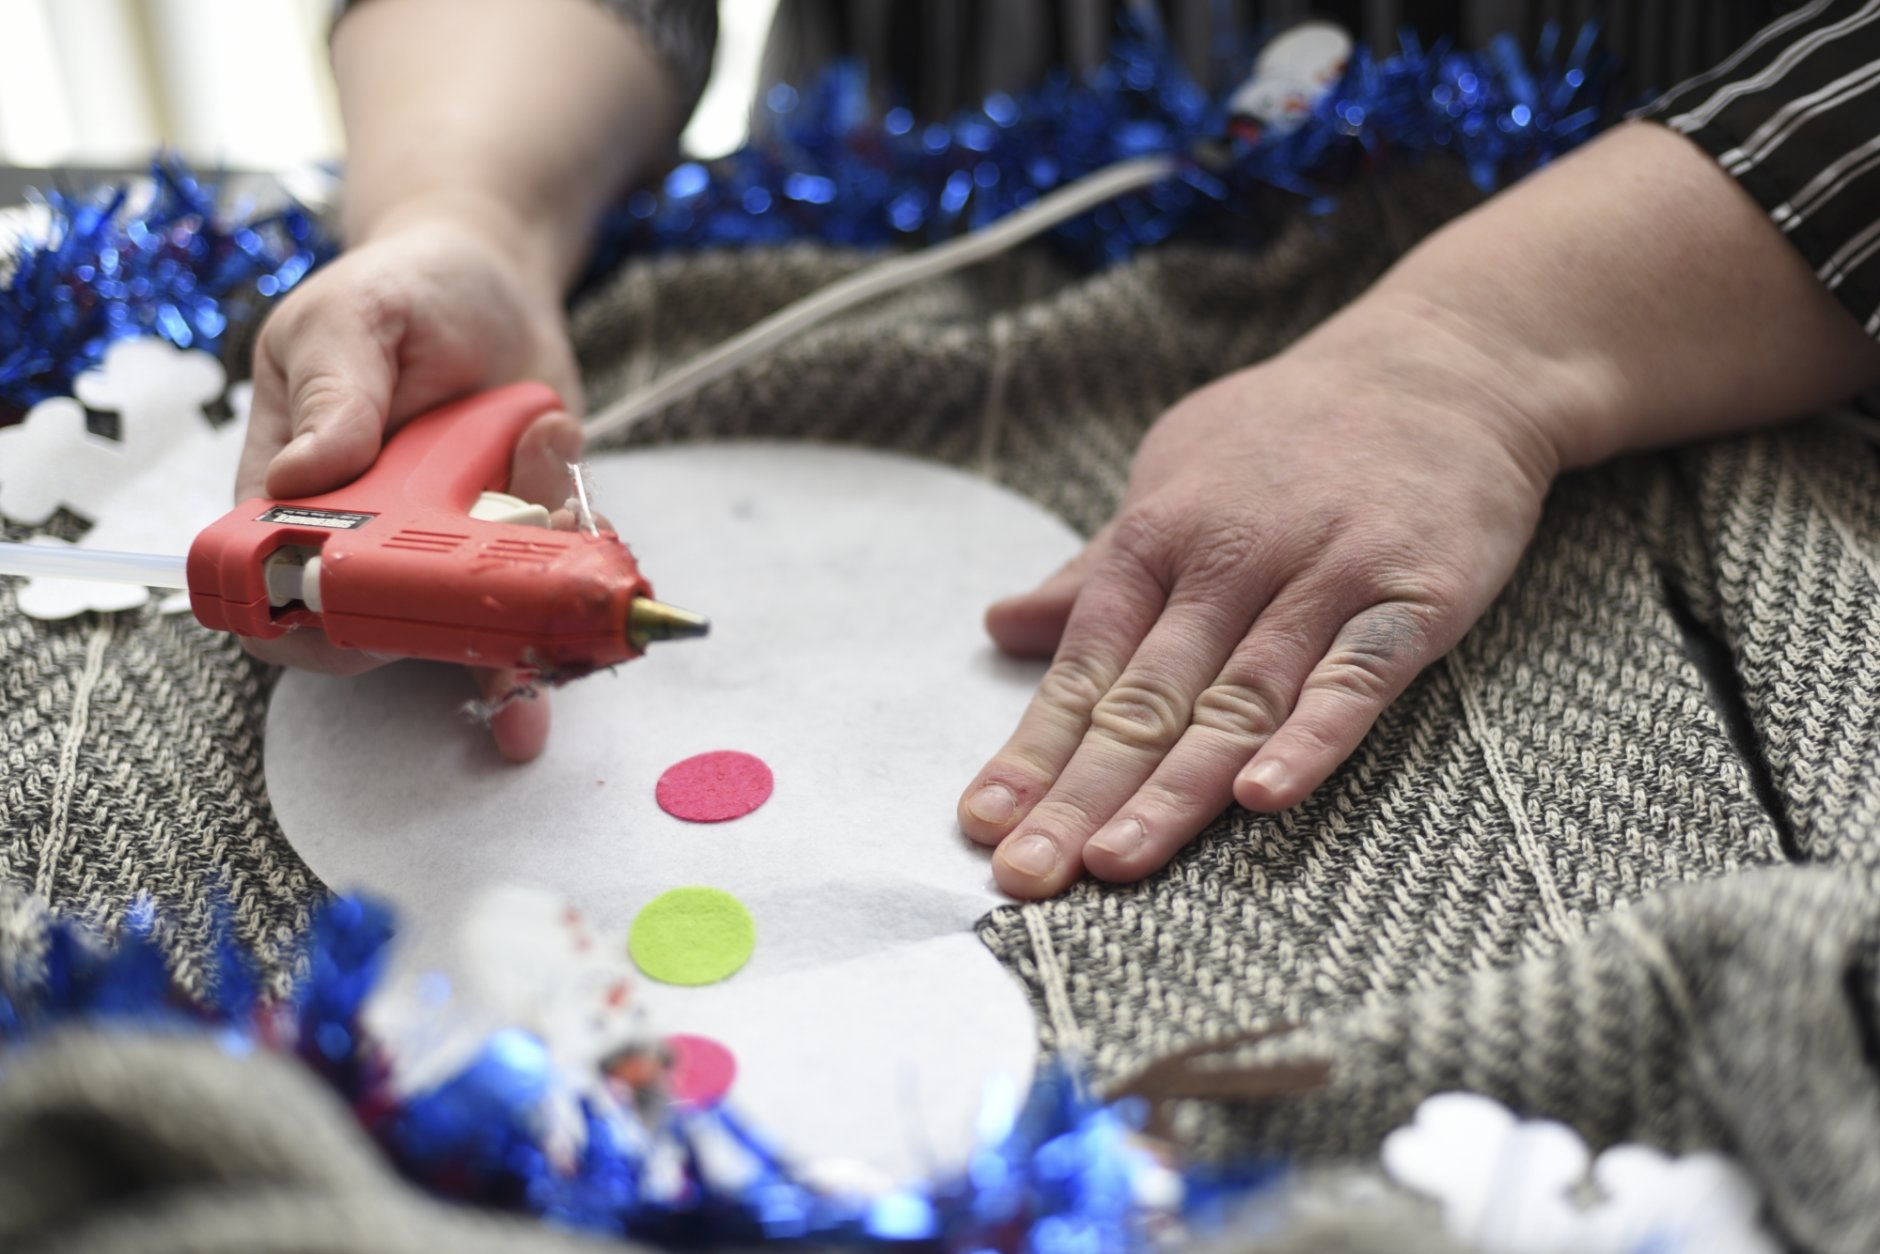 """Doris Cochran works on """"an ugly sweater,"""" which she is planning to sell, Friday, Jan. 18, 2019 in her apartment in Arlington, Va., Cochran is a disabled mother of two young boys living in subsidized housing in Arlington, Virginia. She's stockpiling canned foods to try to make sure her family won't go hungry if her food stamps run out. She says she just doesn't know """"what's going to happen"""" and that's what scares her the most.  (AP Photo/Sait Serkan Gurbuz)"""